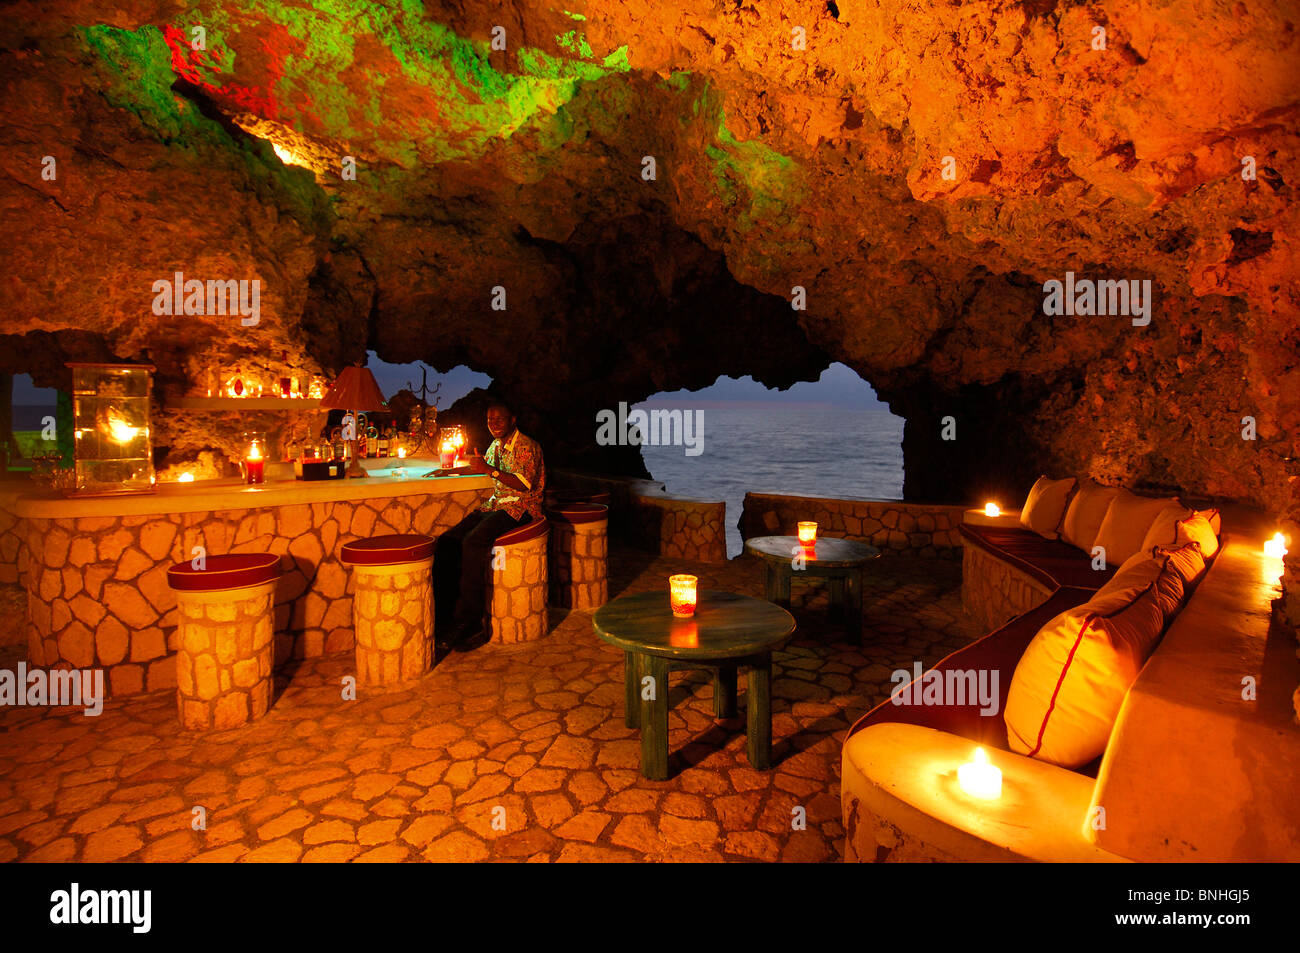 Caribbean Negril Jamaica Cigar Bar At The Cave The Caves